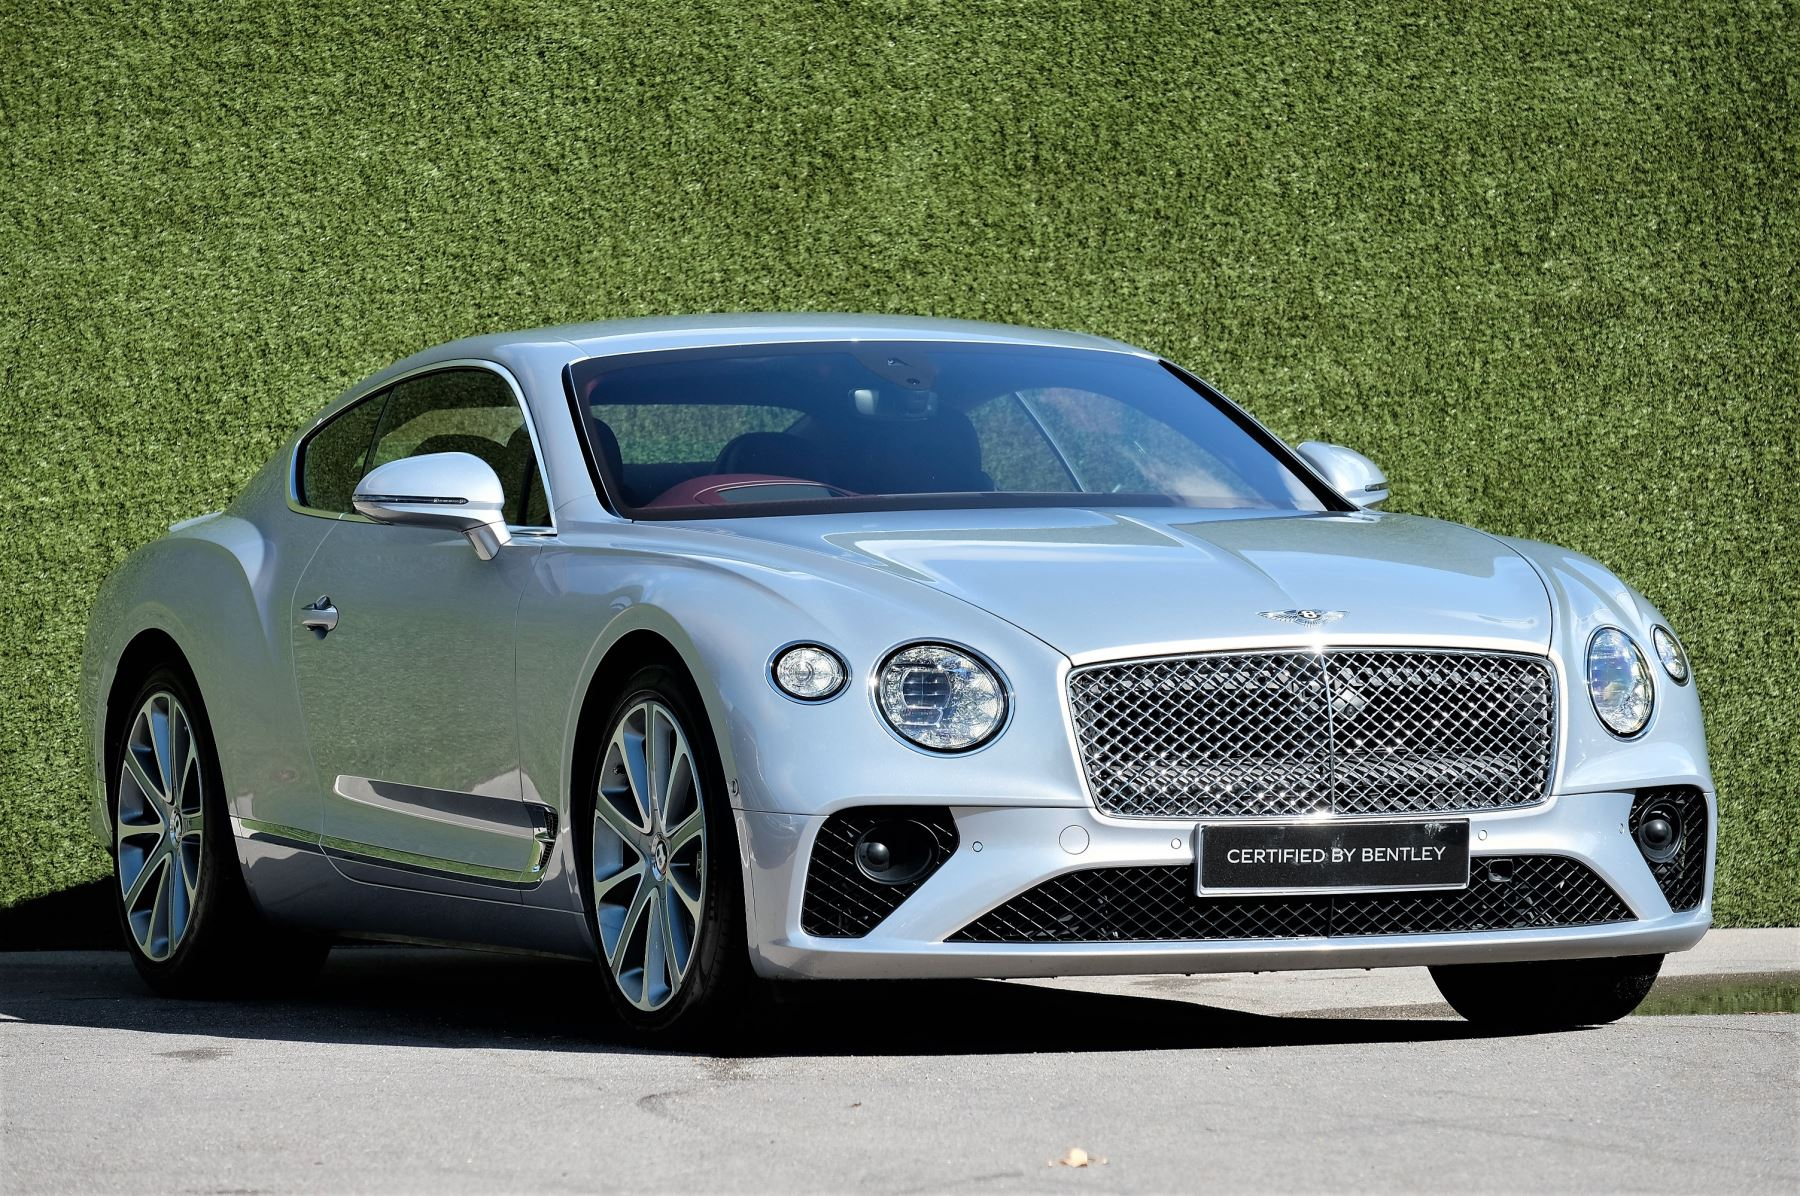 Bentley Continental GT 6.0 W12 Centenary, City and Touring Specification Automatic 2 door Coupe (2019) image